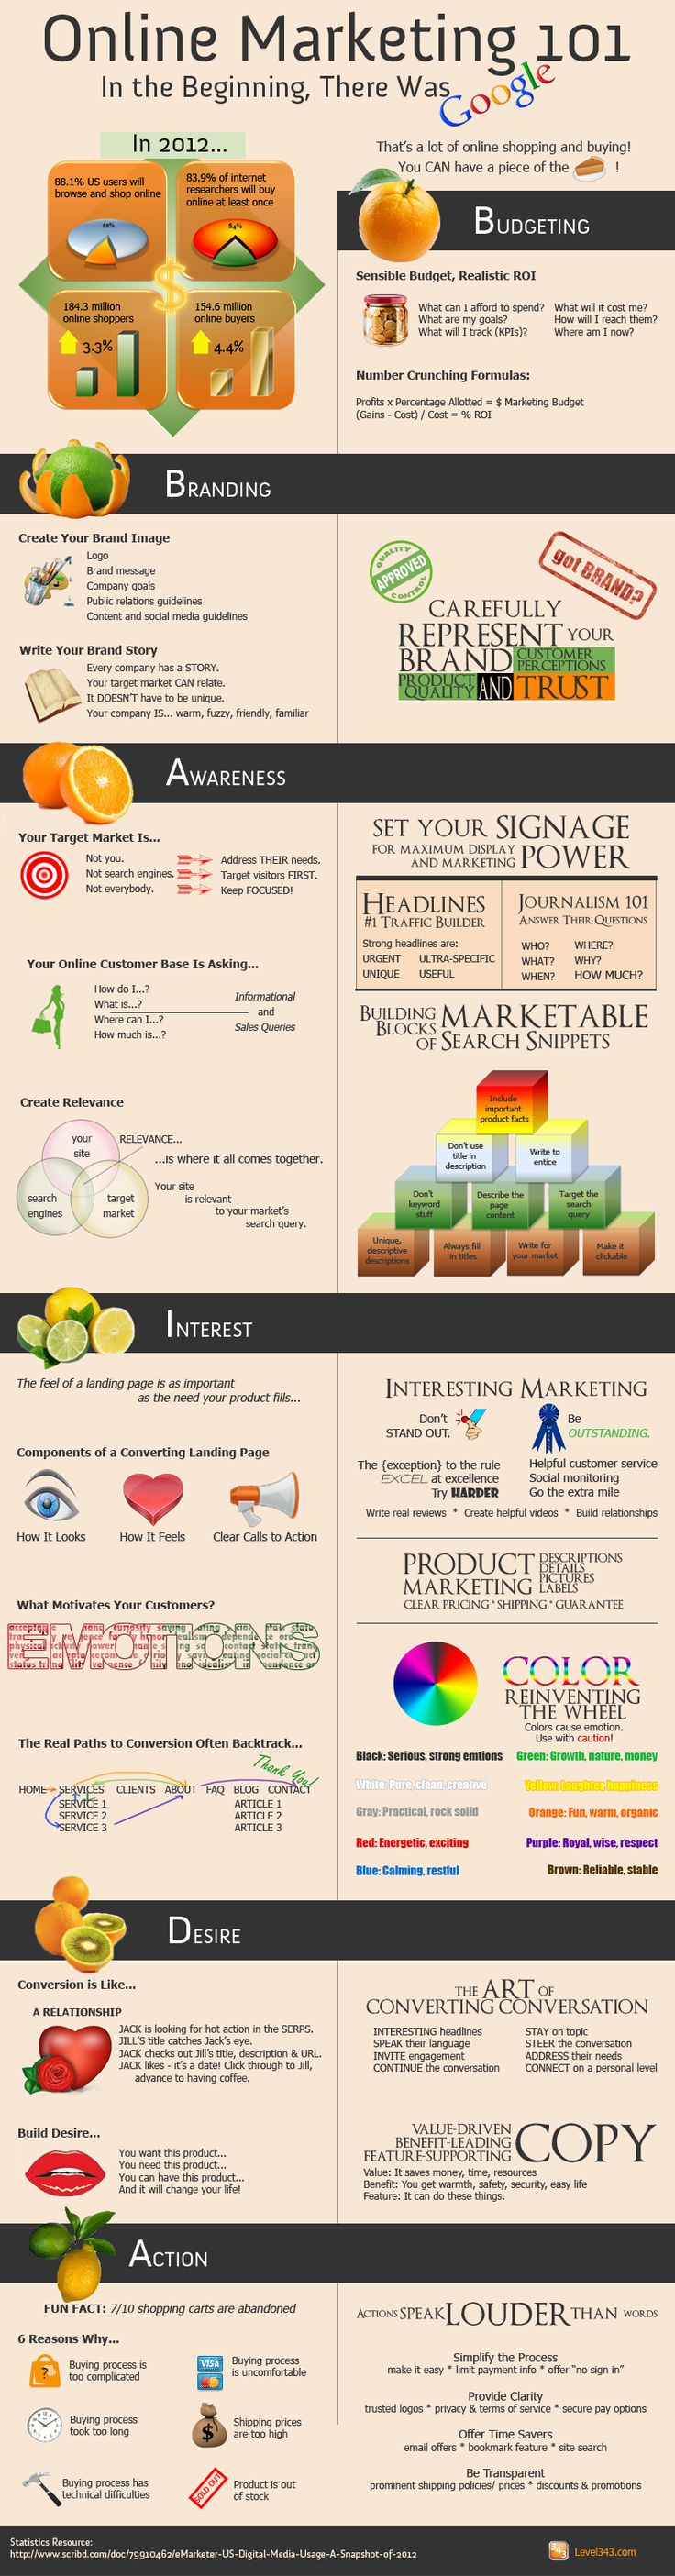 Online Marketing 101 #infographic #socialmedia AND Take this Free Full Lenght Video Training on HOW to Start an Online Business